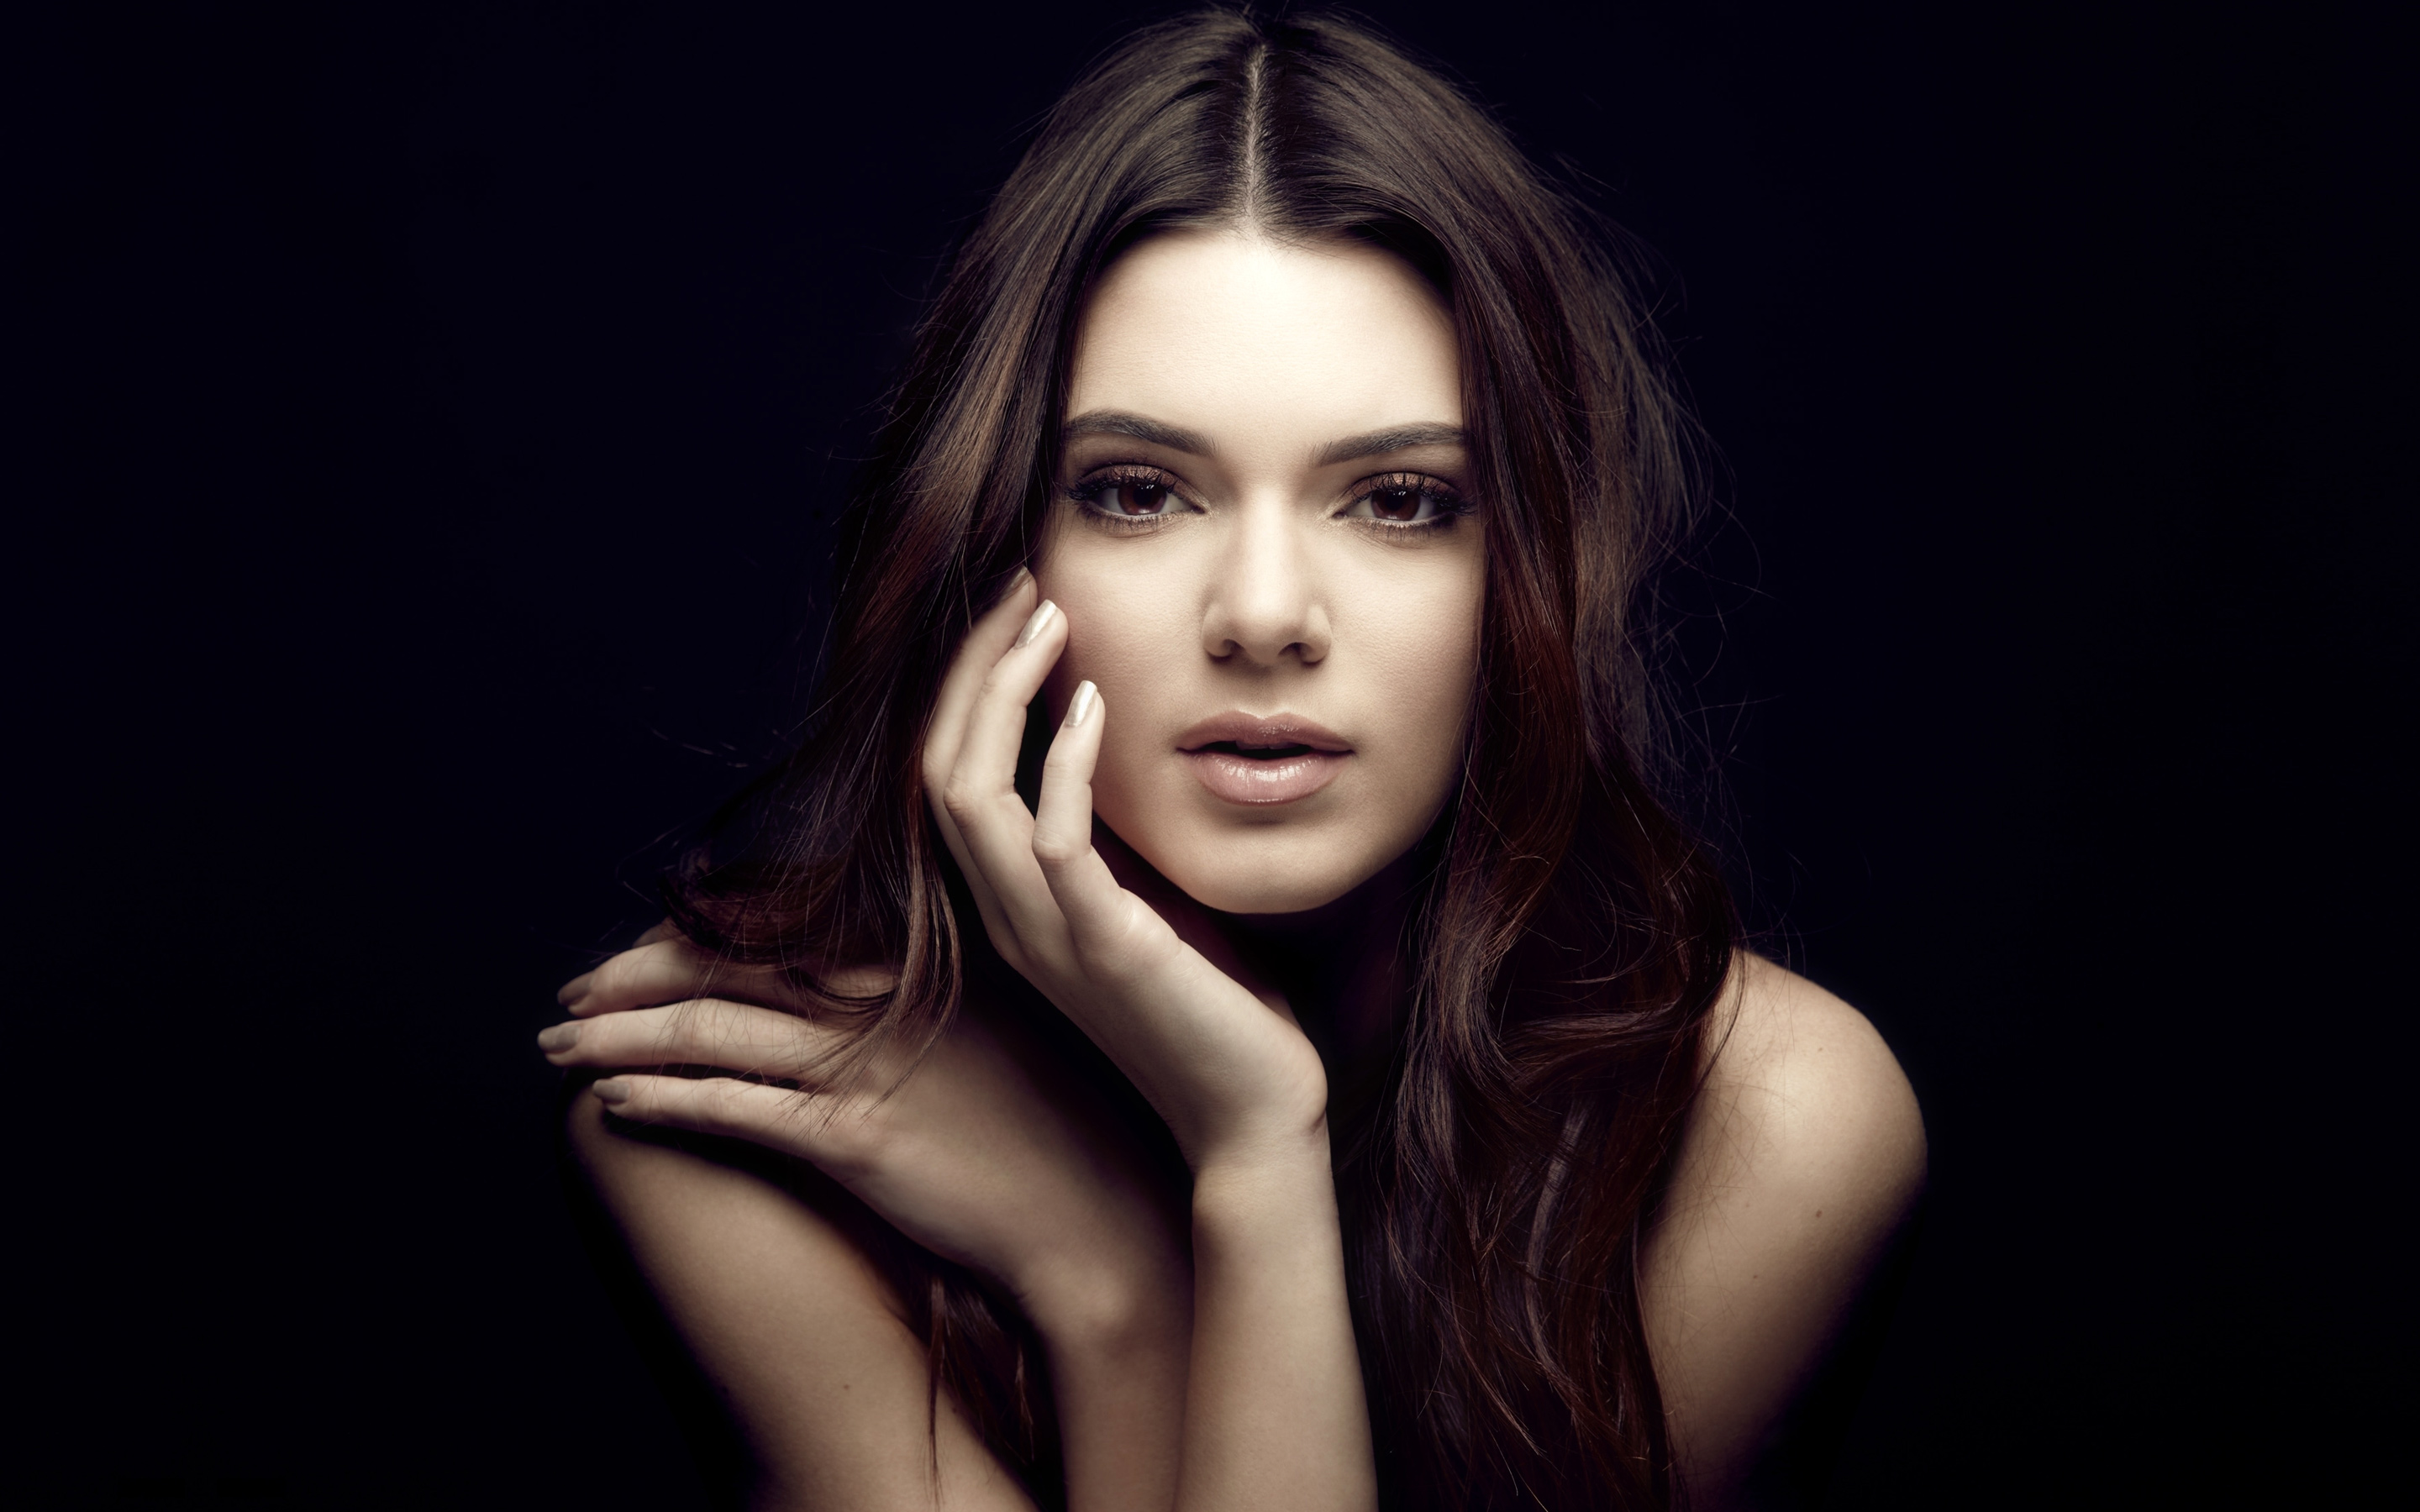 2880x1800 Kendall Jenner American Fashion Model Wallpapers | HD Wallpapers ...